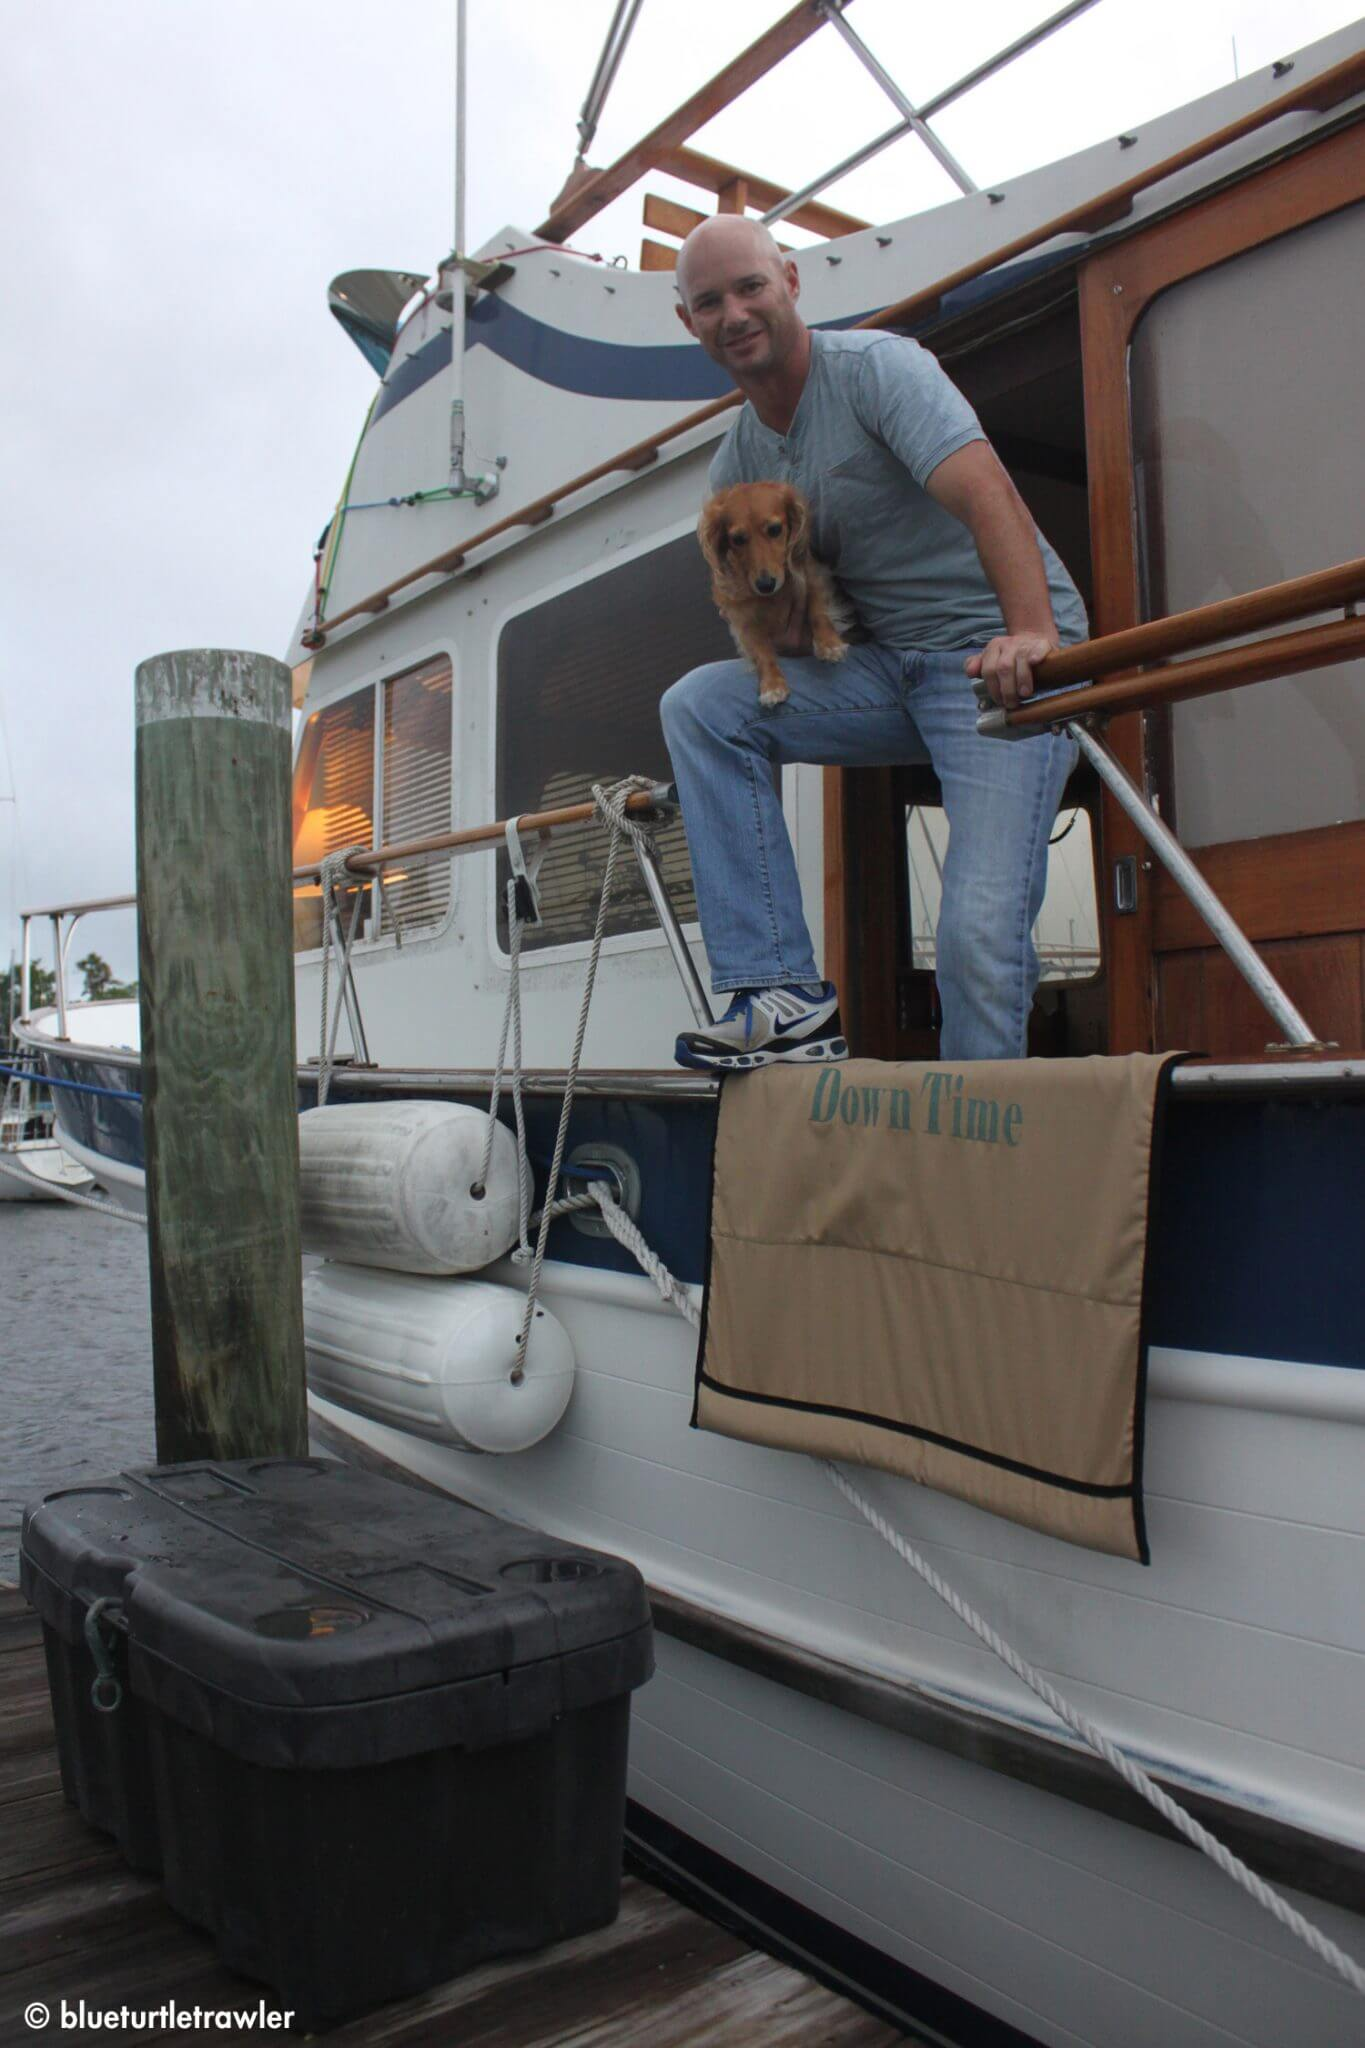 Randy (with Sophie) using a dock box to get down from the boat